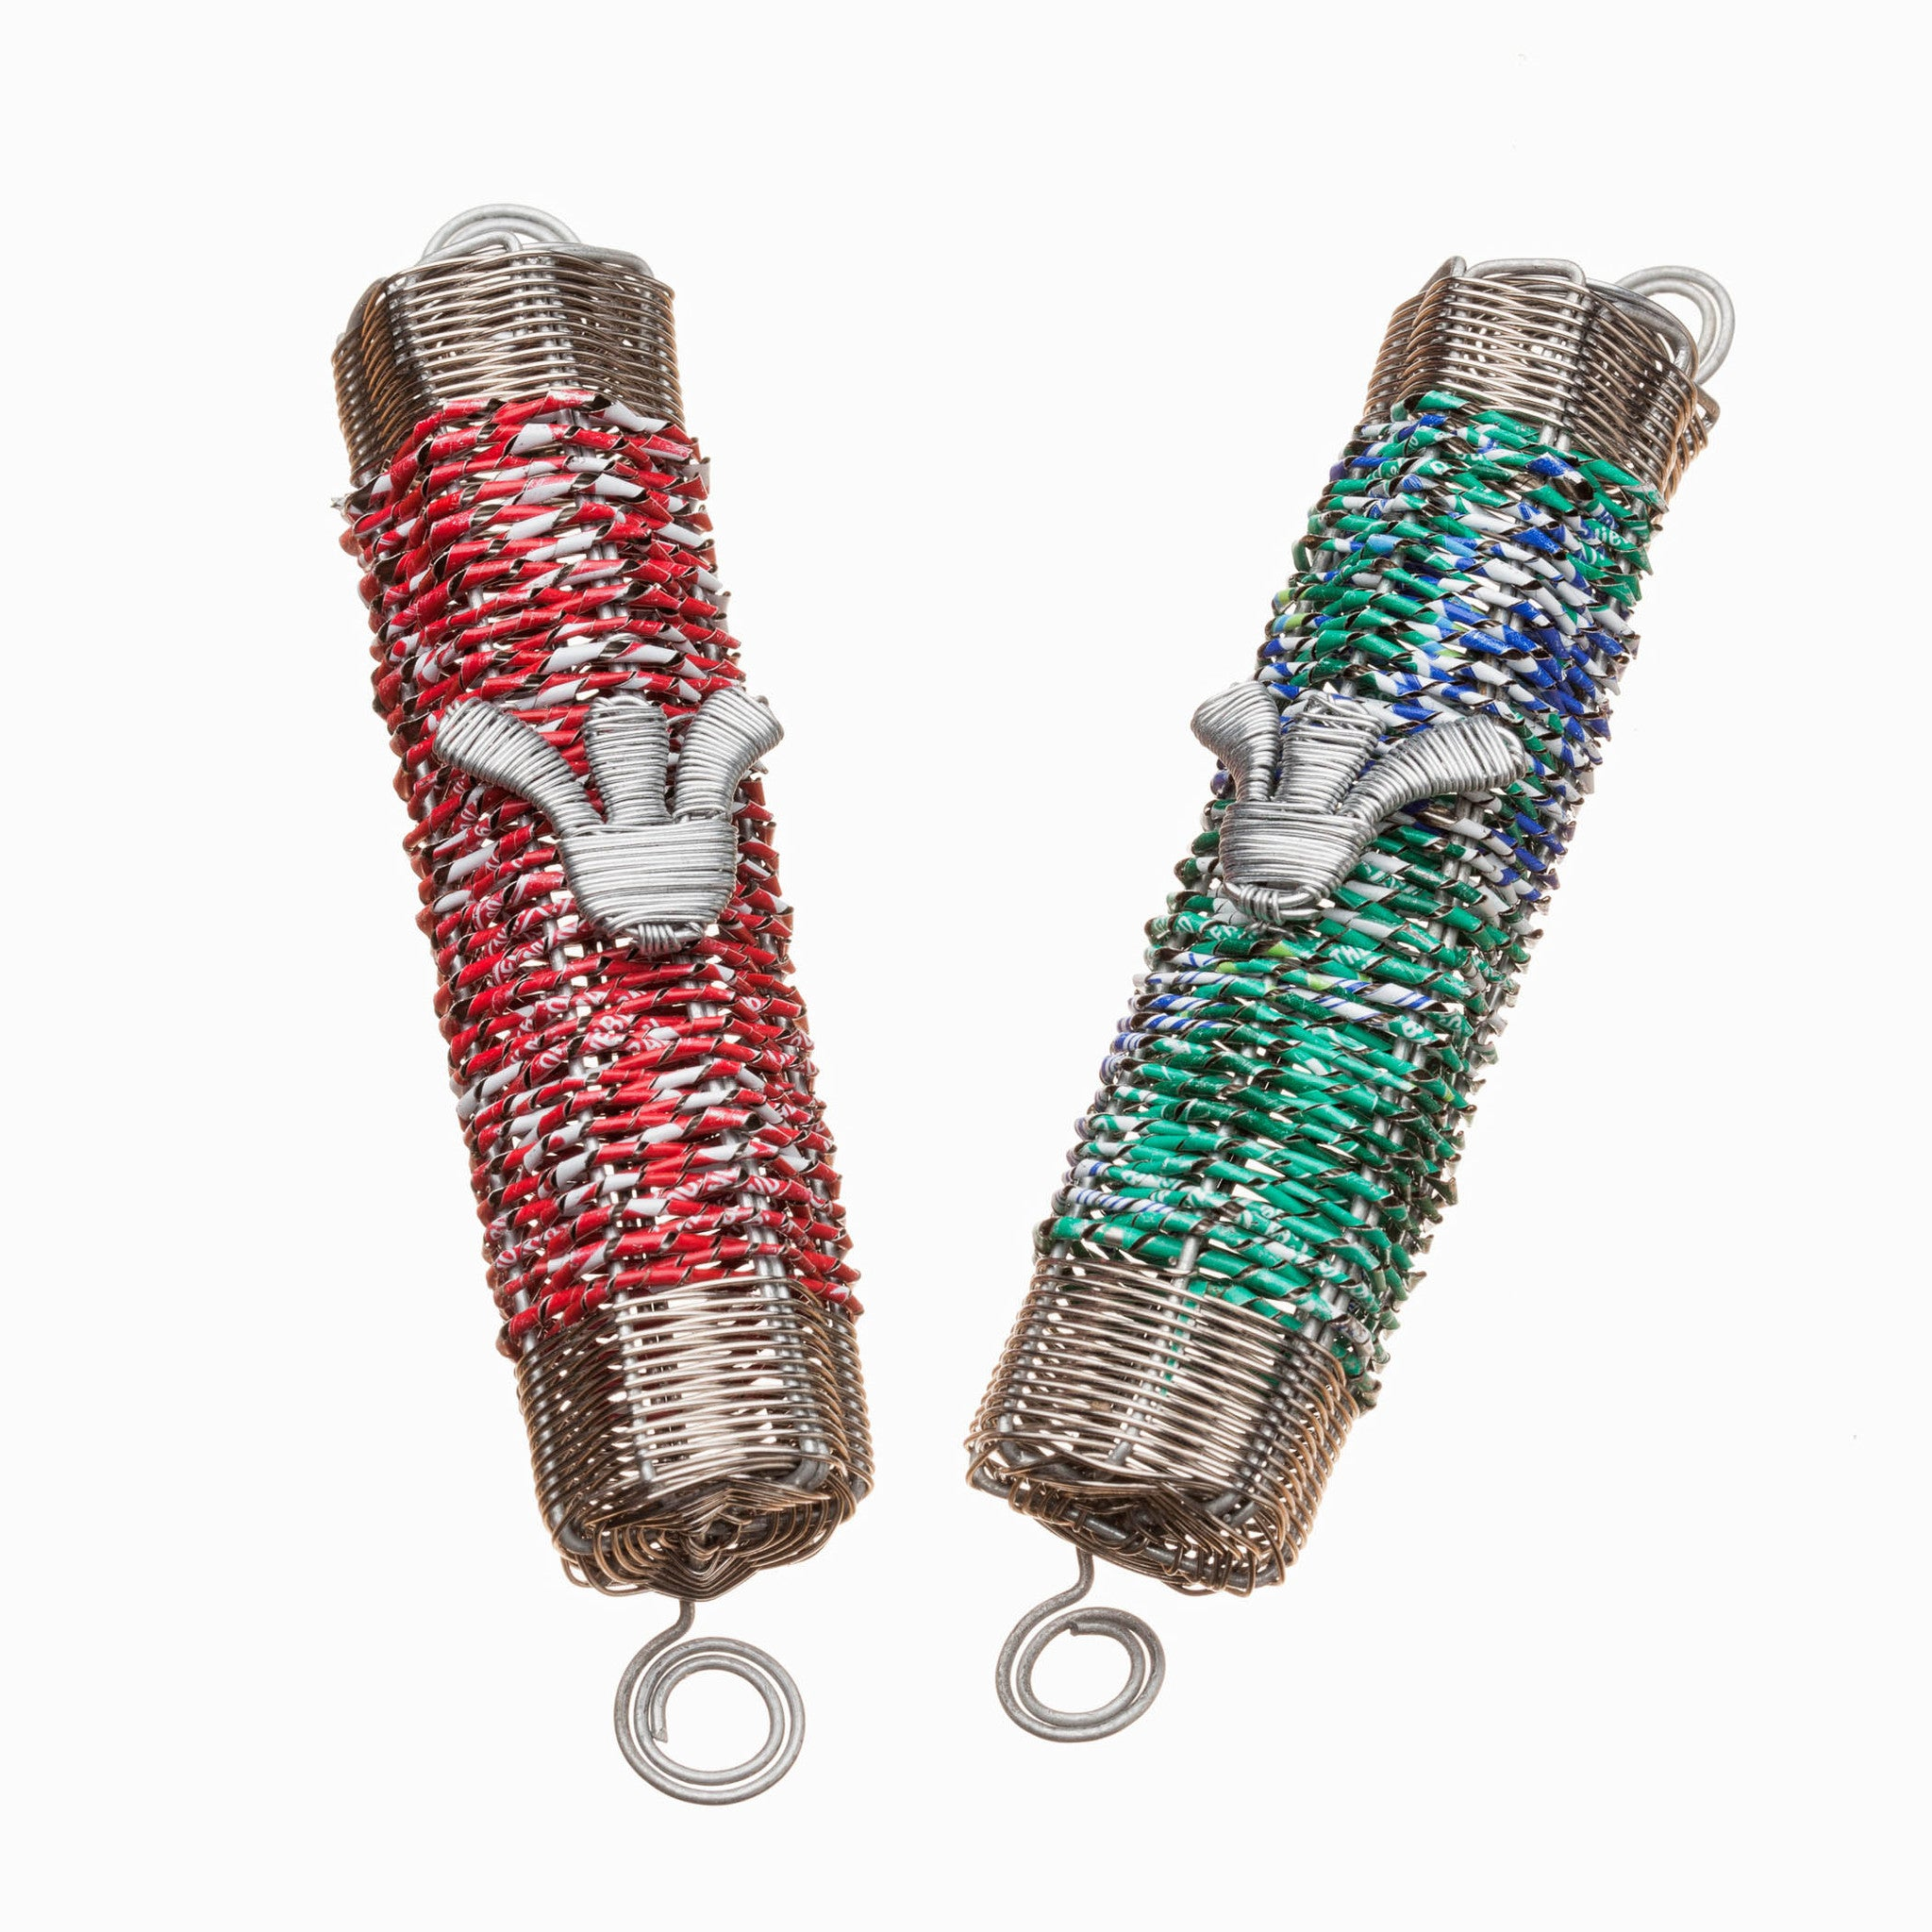 Mezuzah made from recycled soda cans (Sprite)